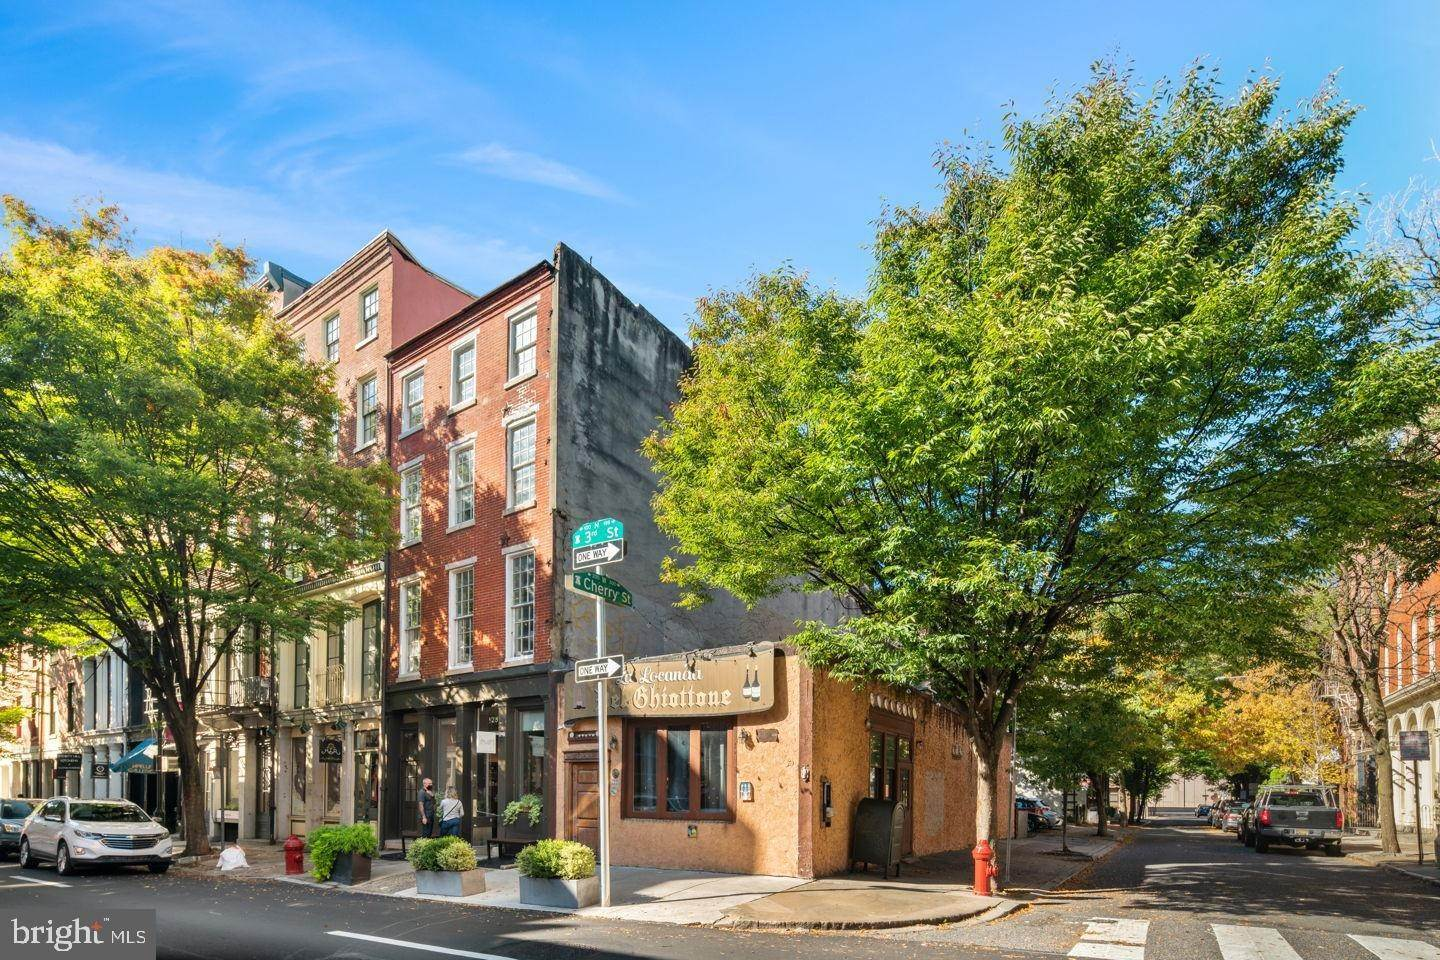 Land for Sale at 130 N 3RD Street Philadelphia, Pennsylvania 19106 United States